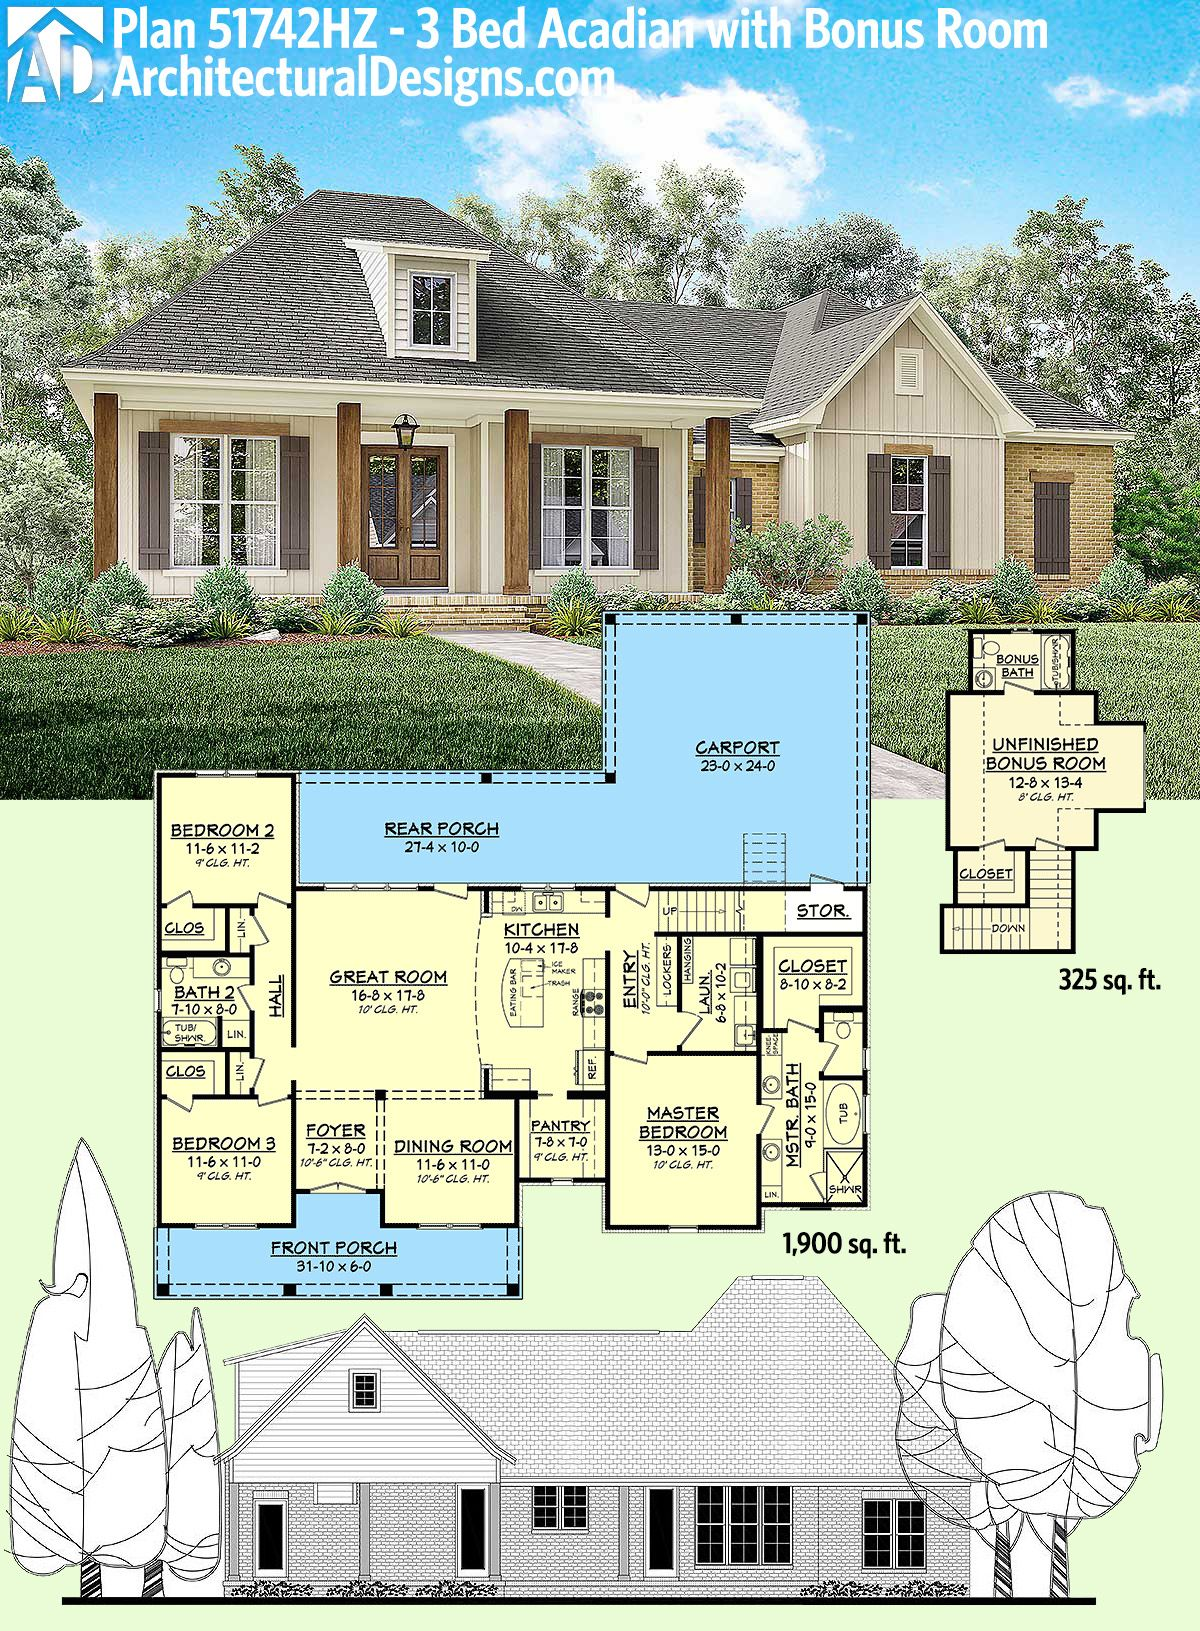 1800s Country Homes: Plan 51742HZ: 3 Bed Acadian Home Plan With Bonus Over